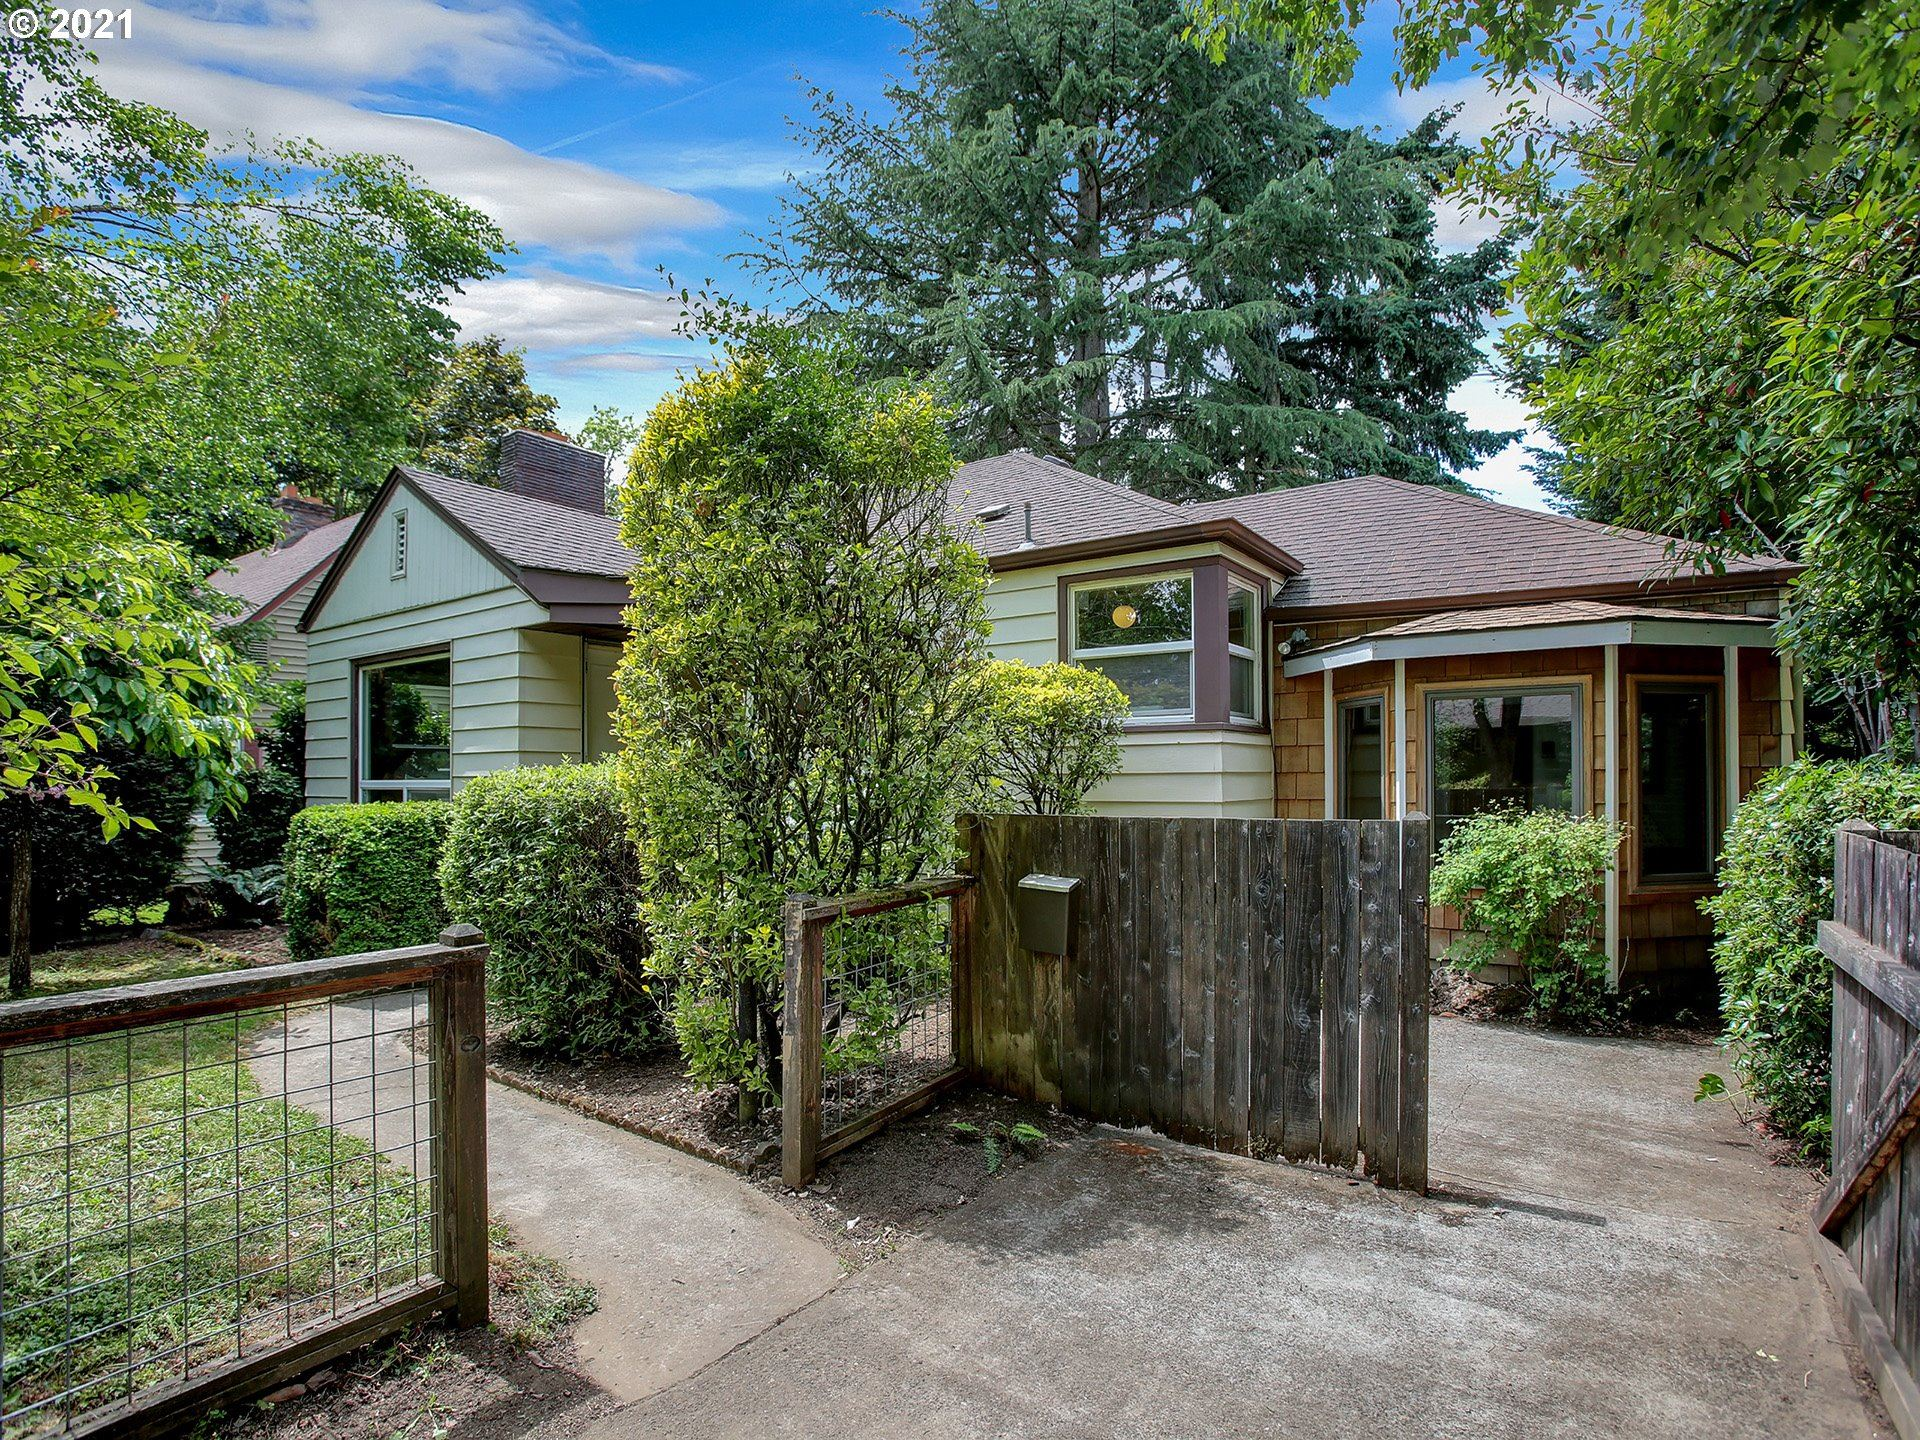 3221 SE 75TH AVE, Portland, OR 97206 - MLS#: 21659287